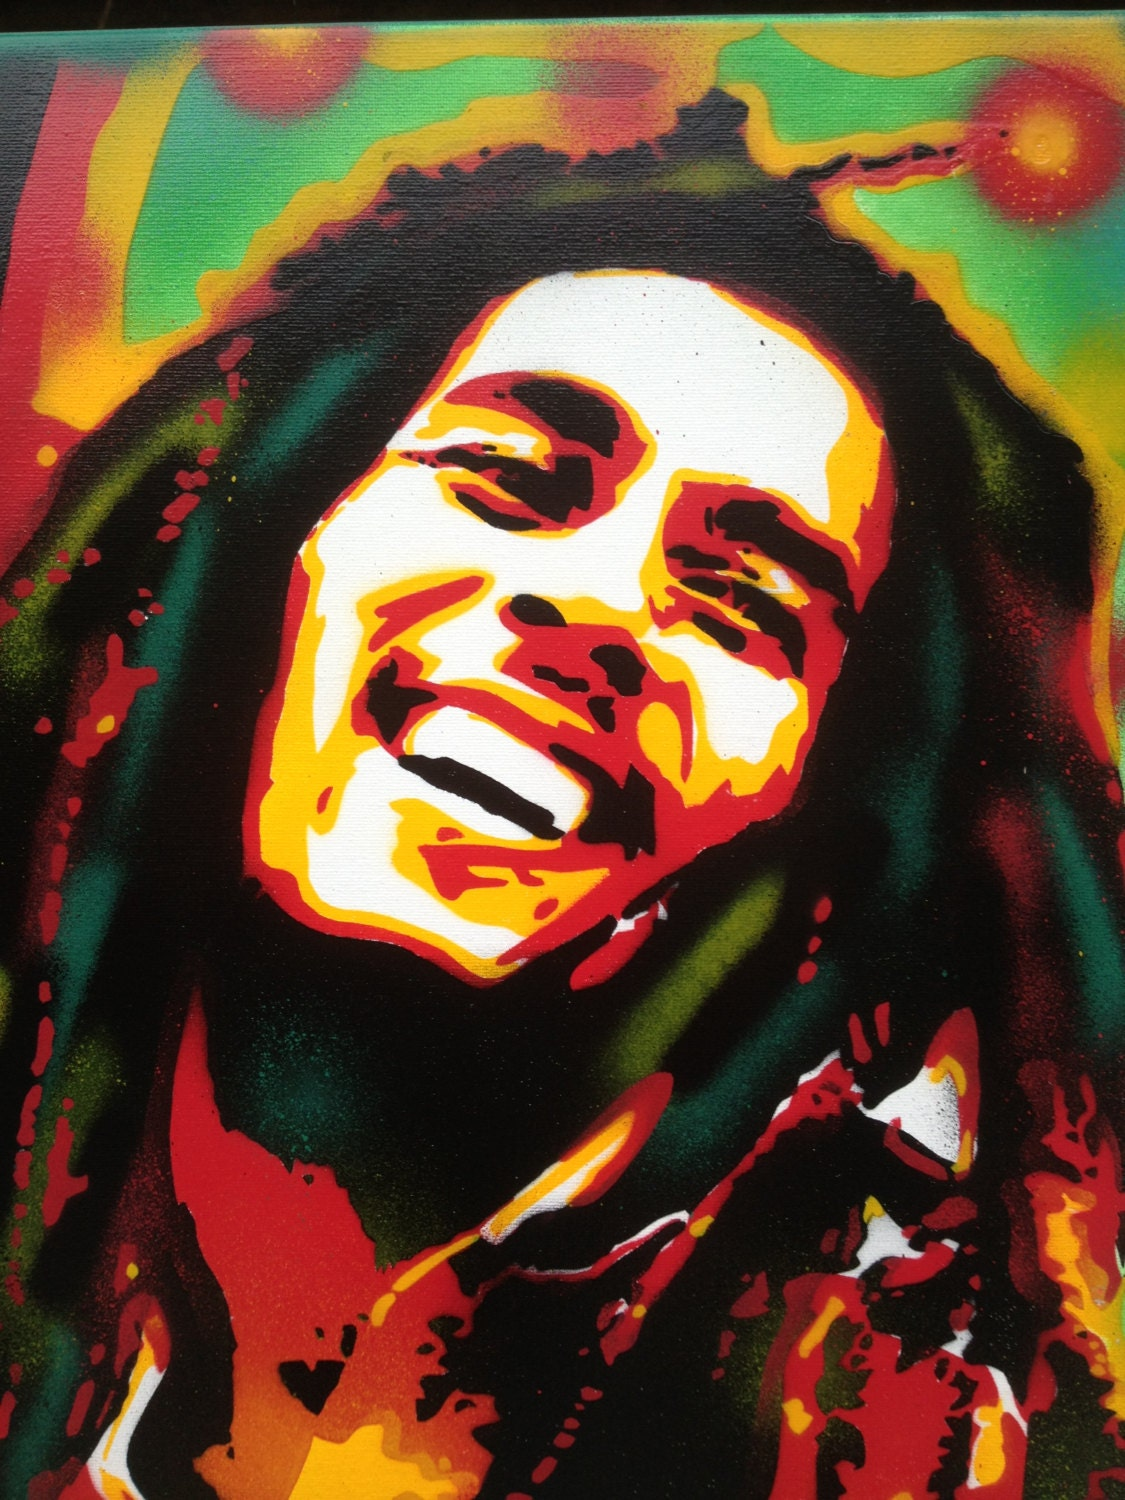 Trench town bob marley download music free